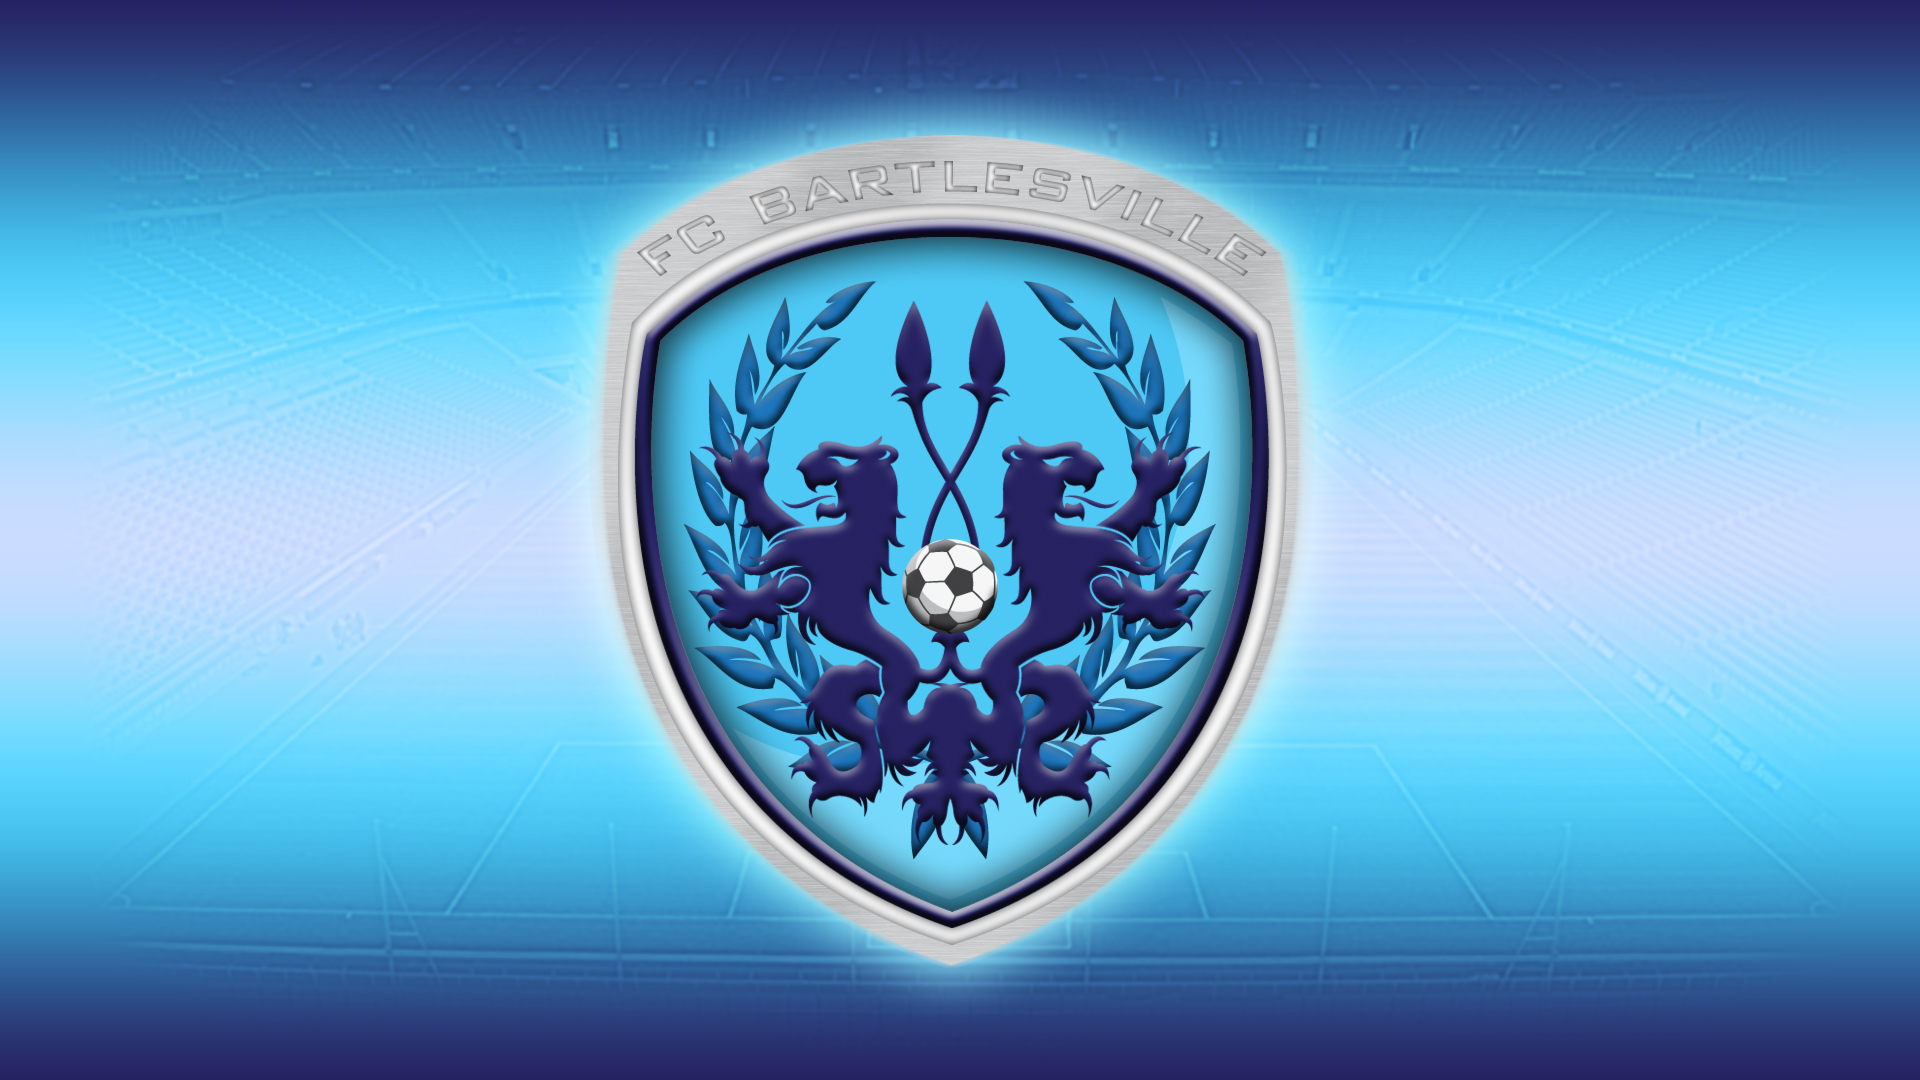 FC Bartlesville Wallpaper 1